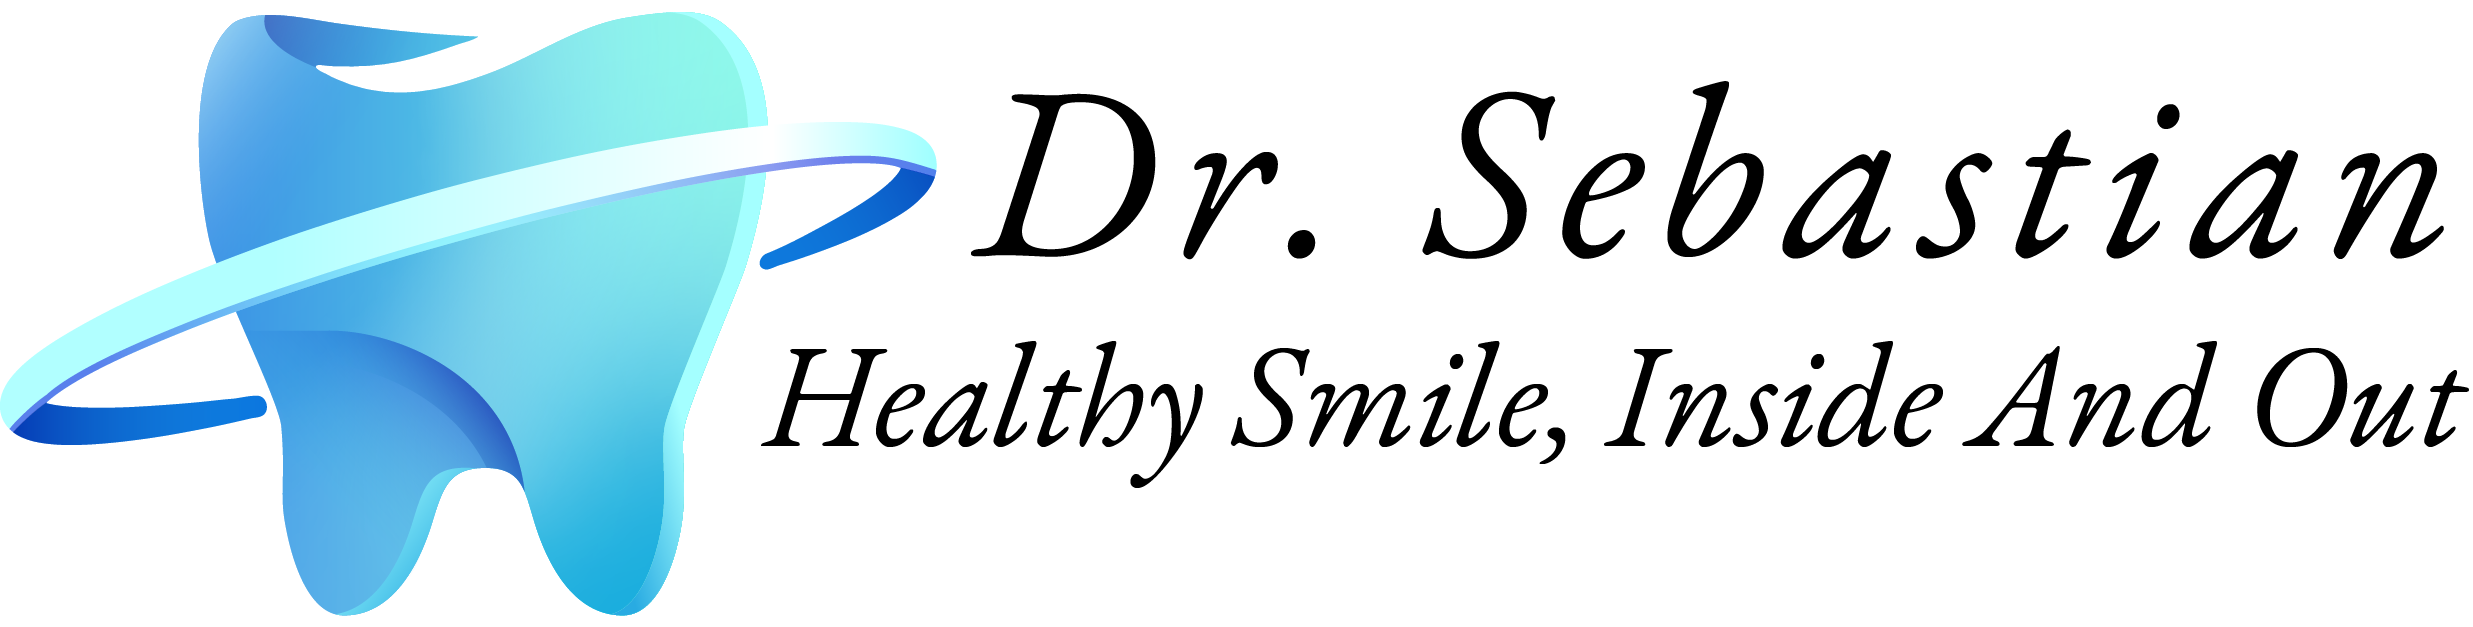 huntington beach dentist logo